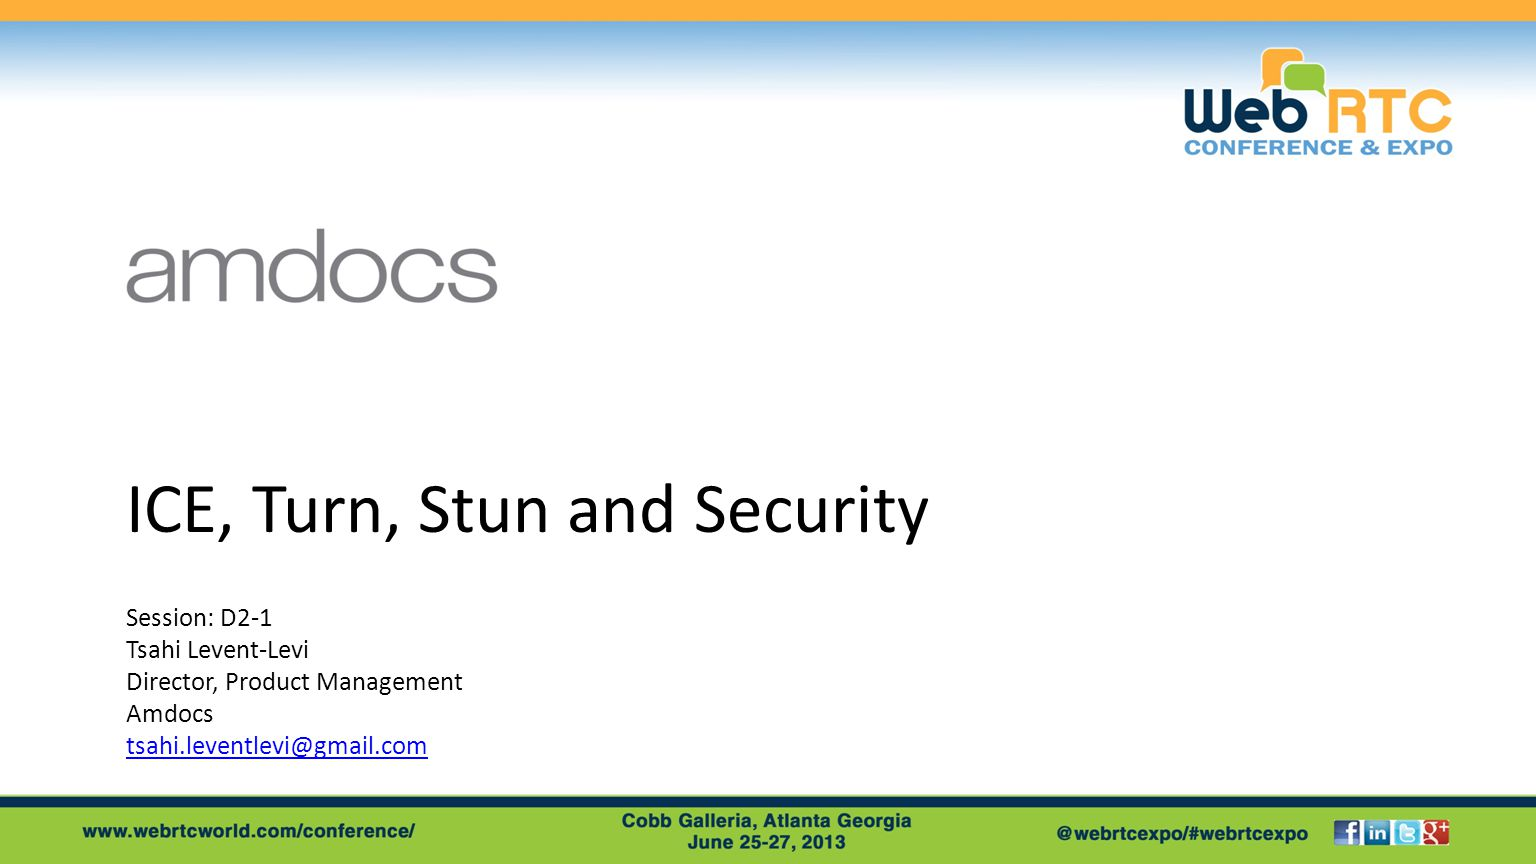 ICE, Turn, Stun and Security Session: D2-1 Tsahi Levent-Levi Director, Product Management Amdocs tsahi.leventlevi@gmail.com